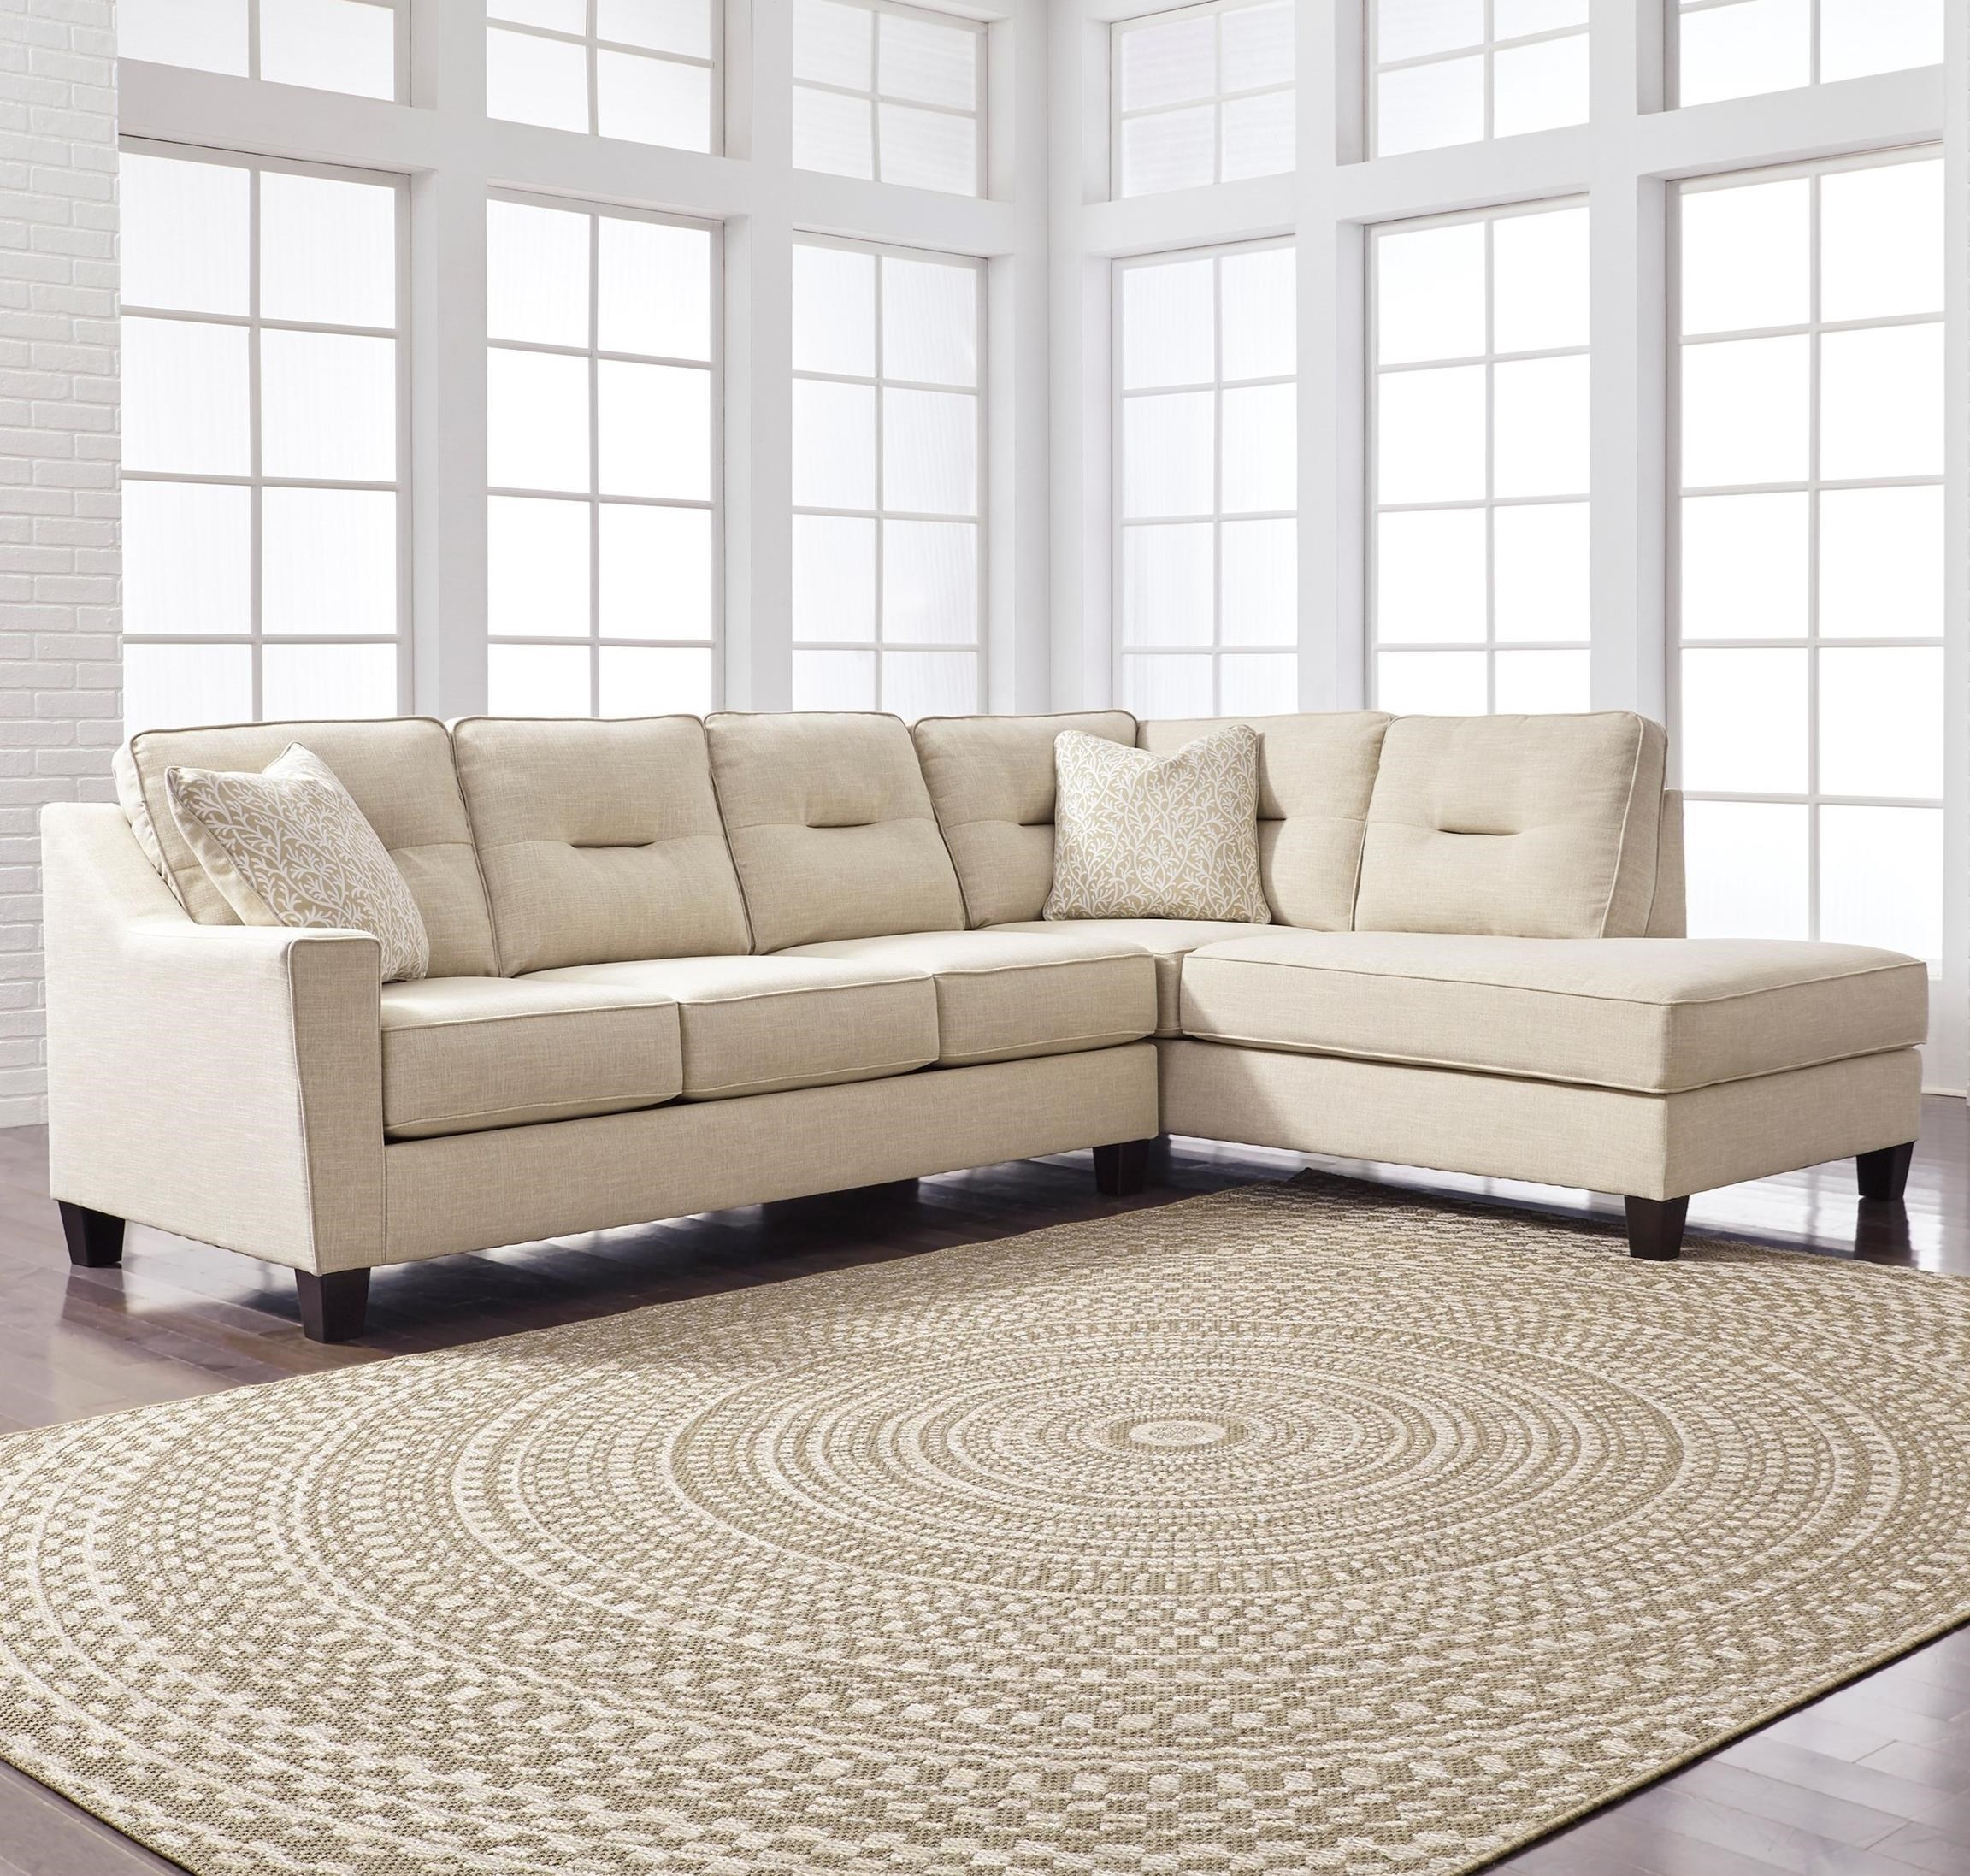 Benchcraft By Ashley Kirwin NuvellaSectional With Sleeper Sofa U0026 Chaise ...